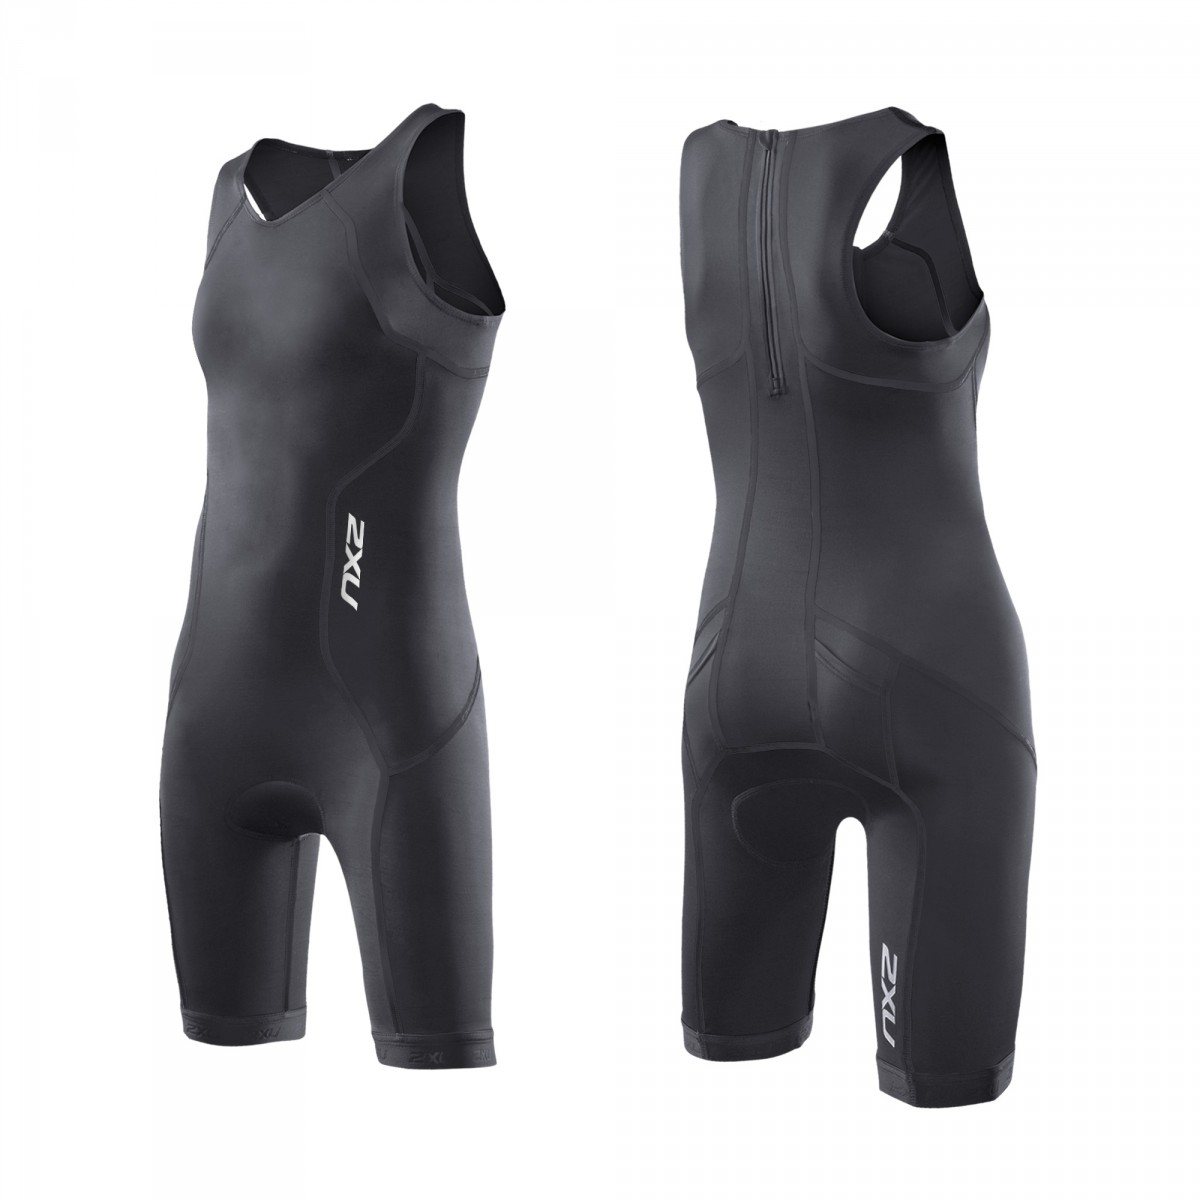 2XU Youth Active Trisuit Girls